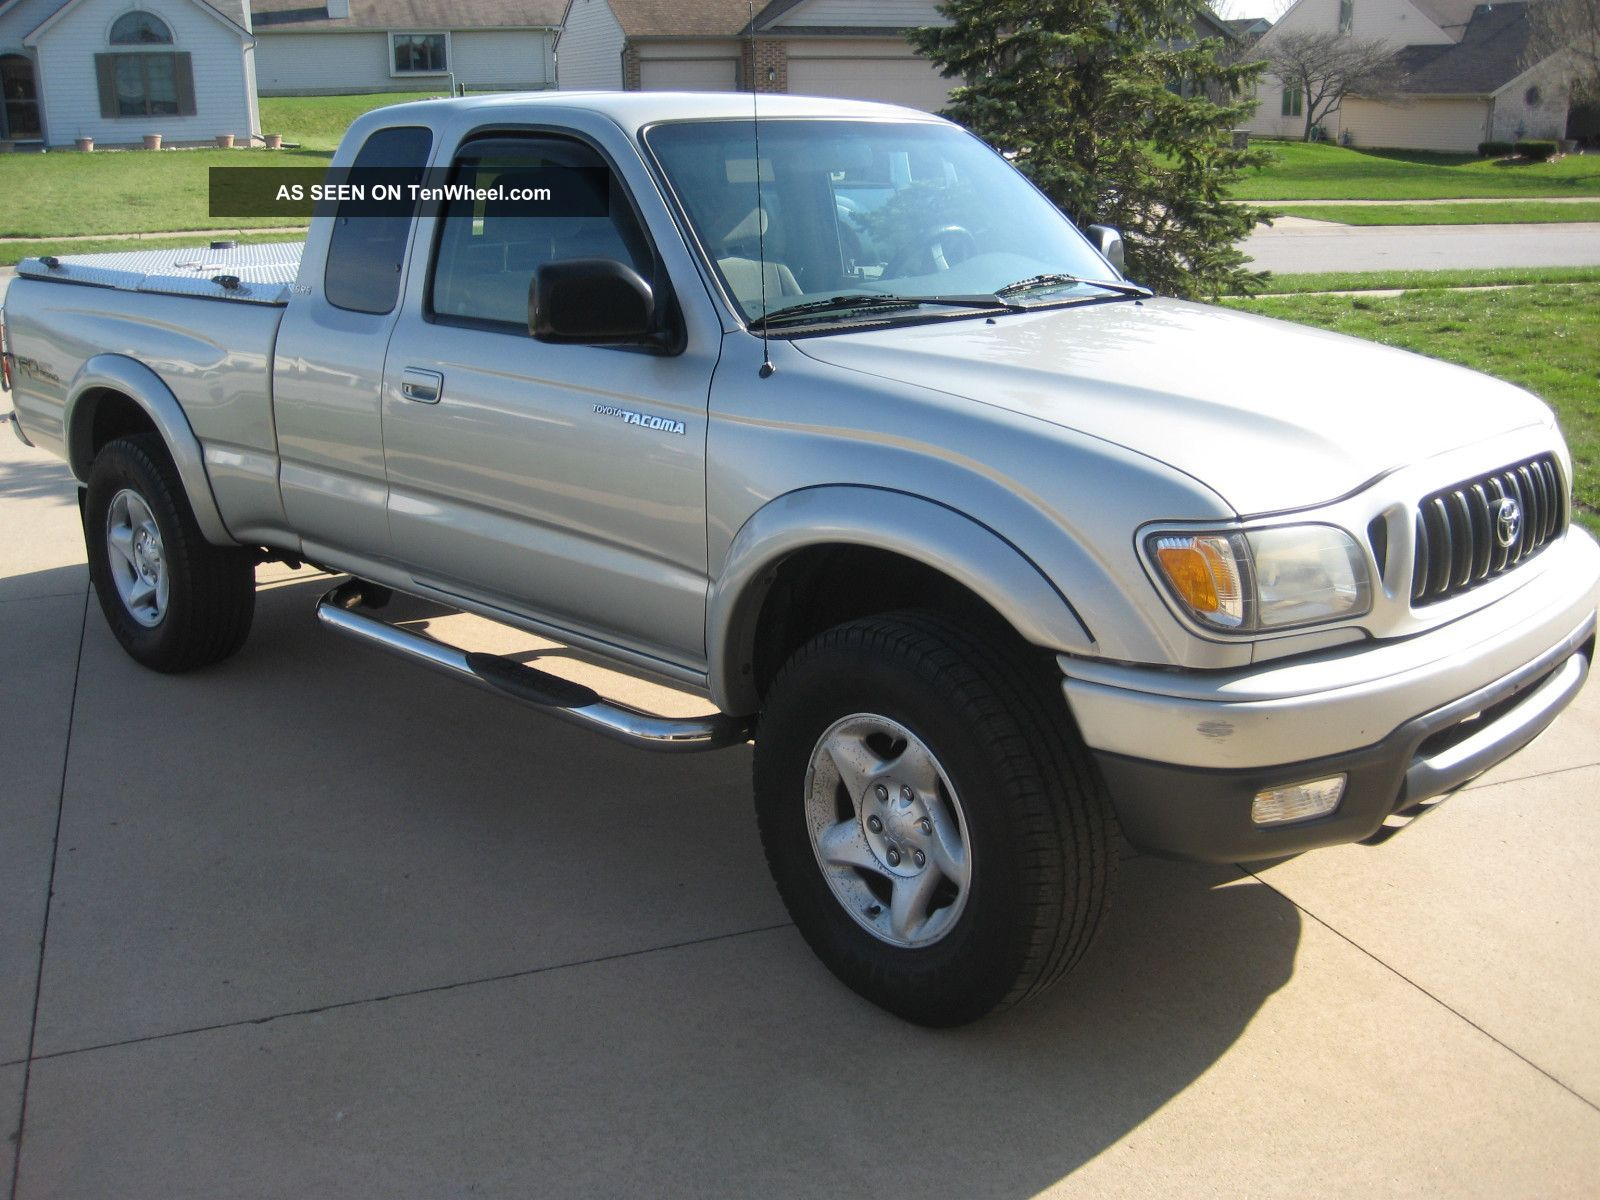 2004 toyota tacoma xtra cab 4x4 sr5 trd with diamondback. Black Bedroom Furniture Sets. Home Design Ideas